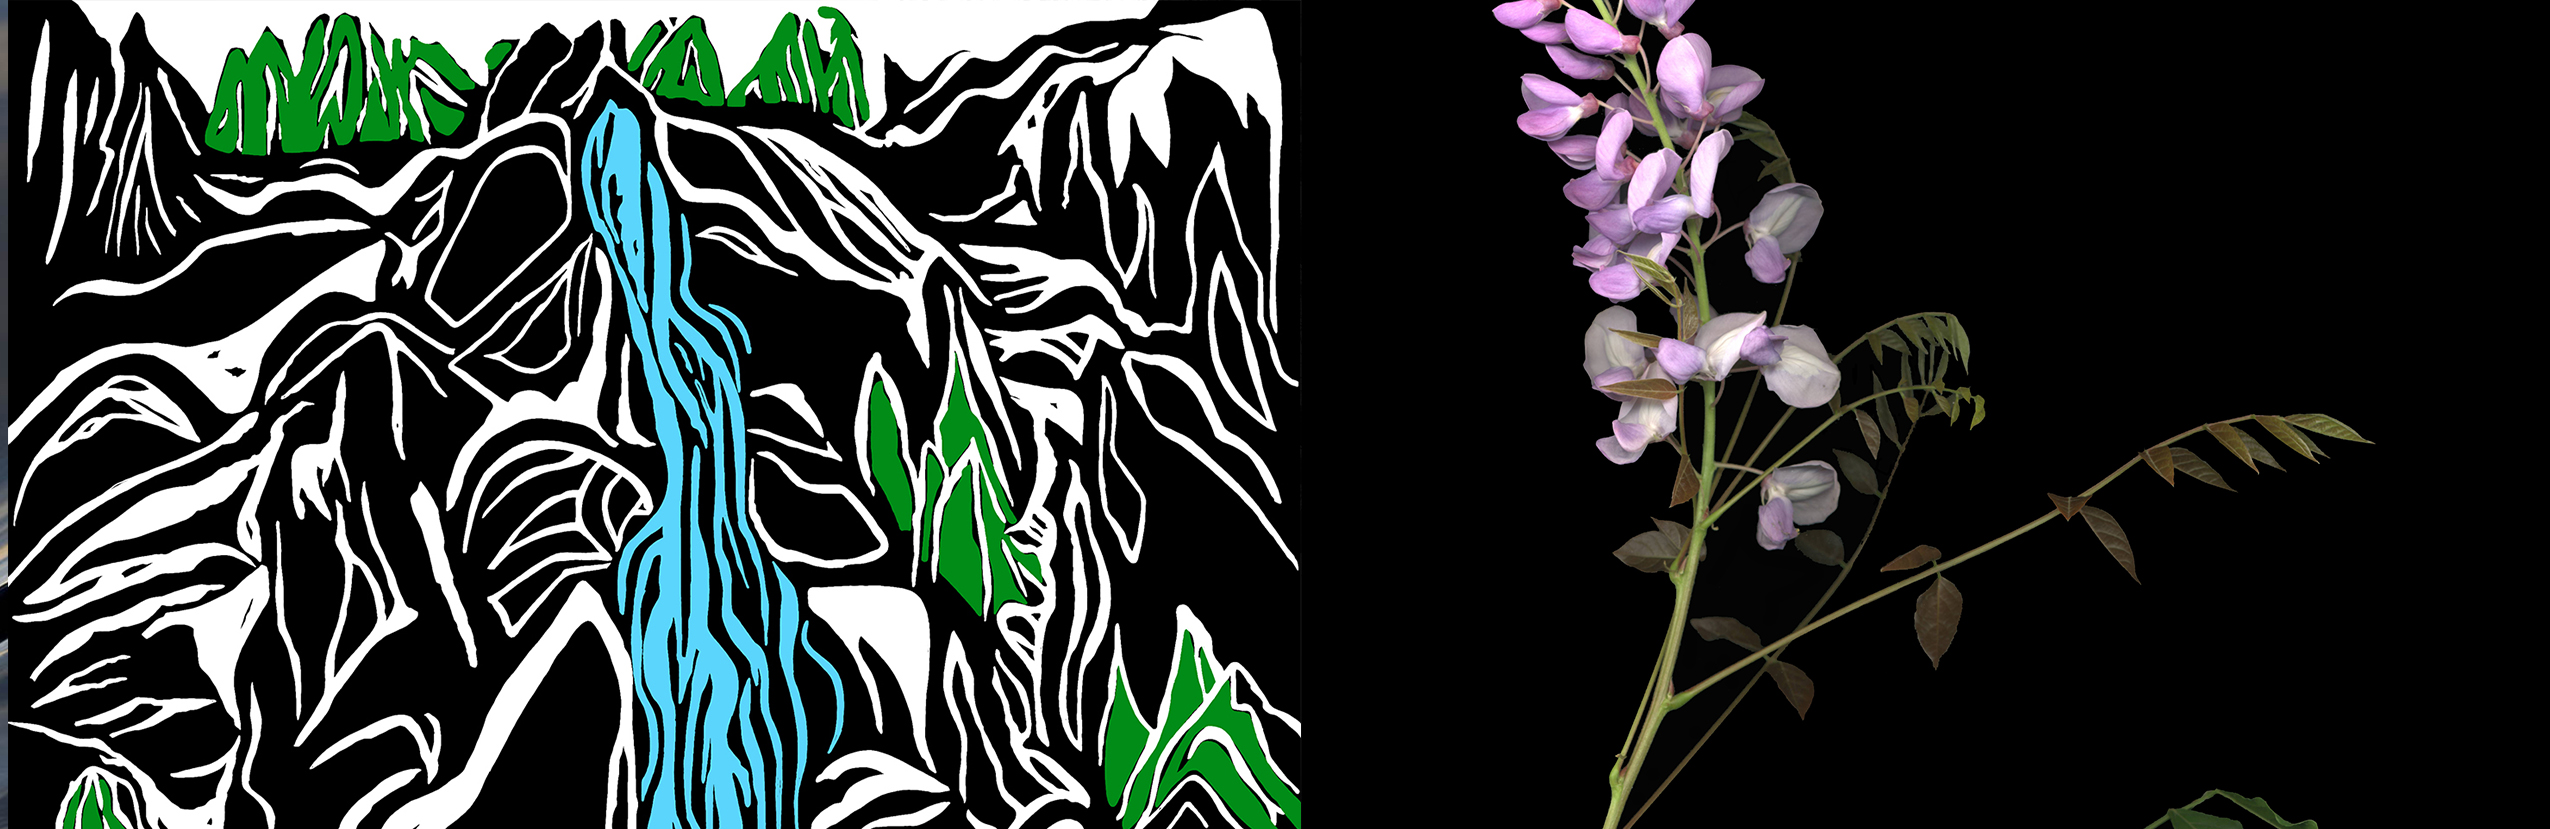 Do What You Like: Explorations in Digital Painting and Herbarium